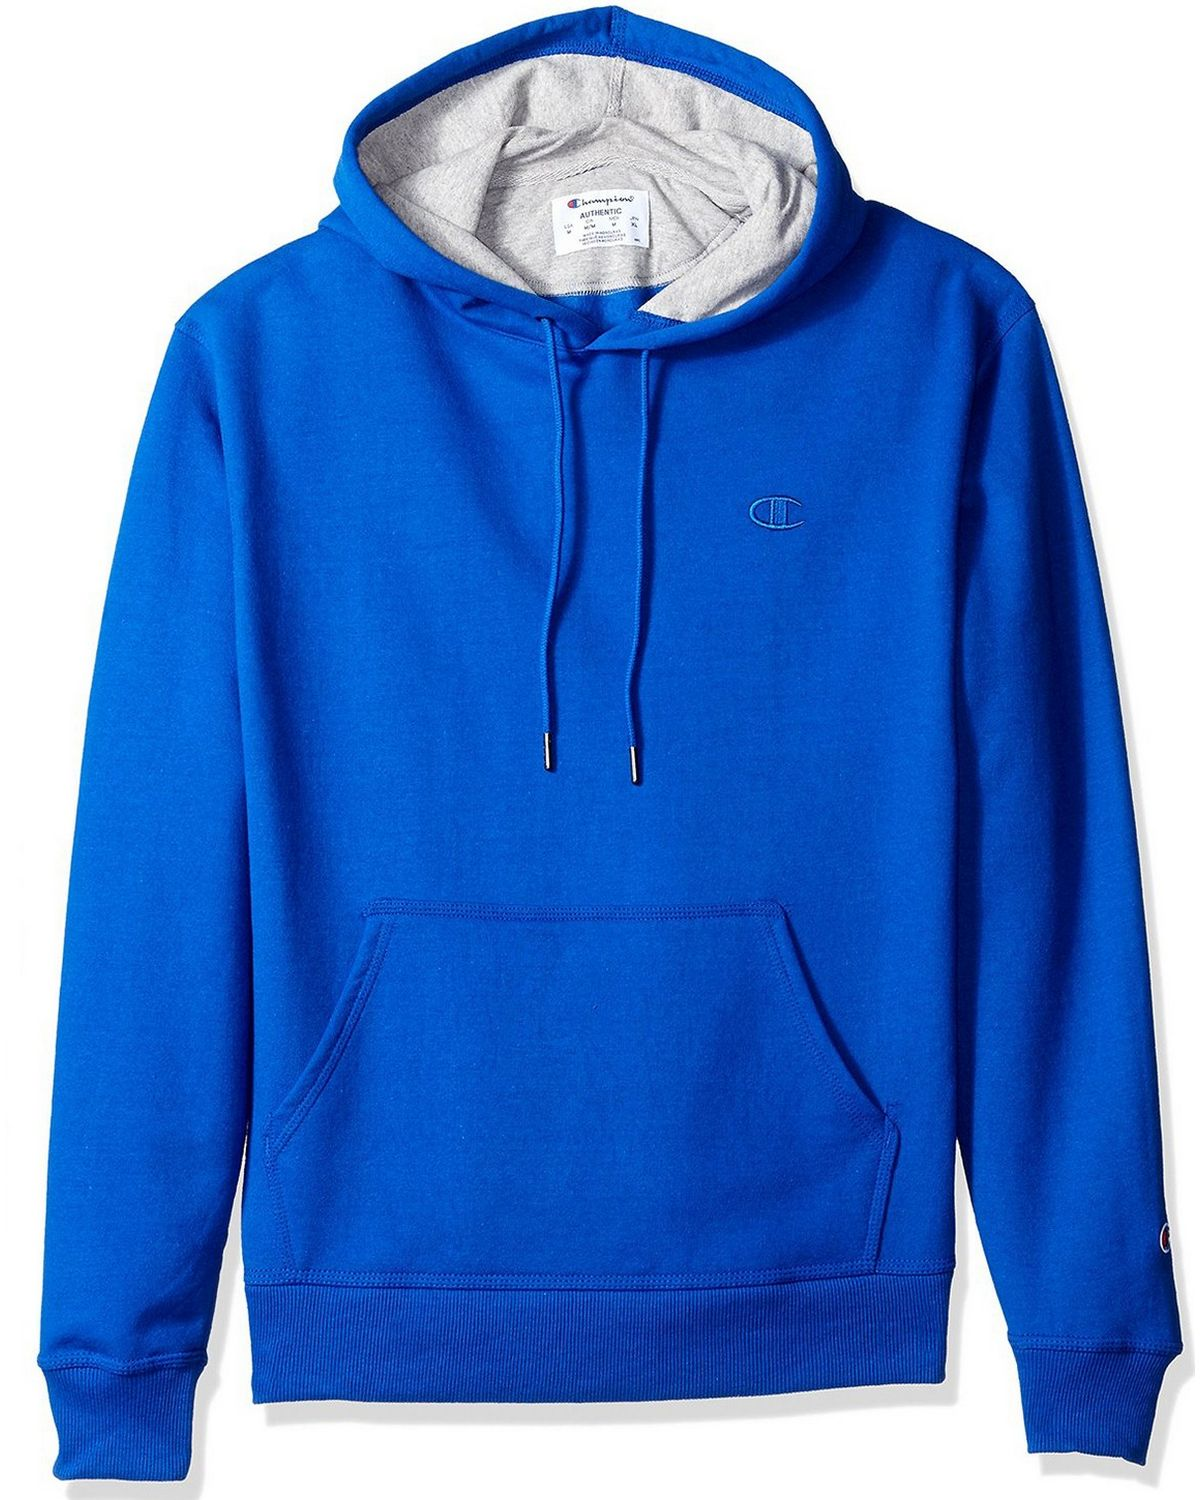 Champion S0889 Mens Fleece Pullover Hoodie - Surf The Web - XL S0889